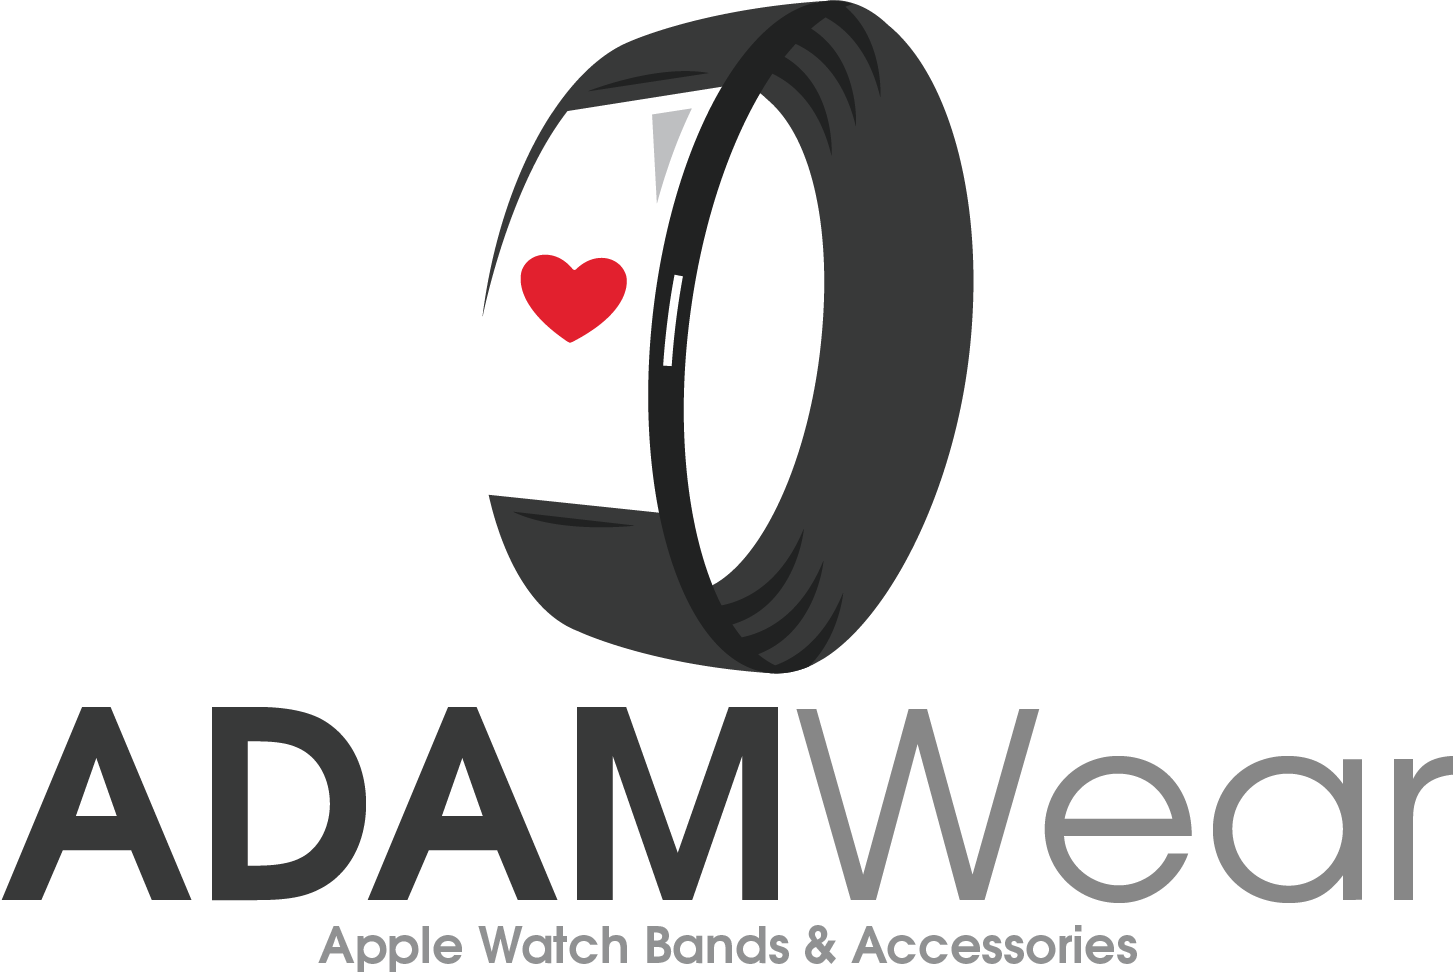 Apple Watch Bands and Accessories